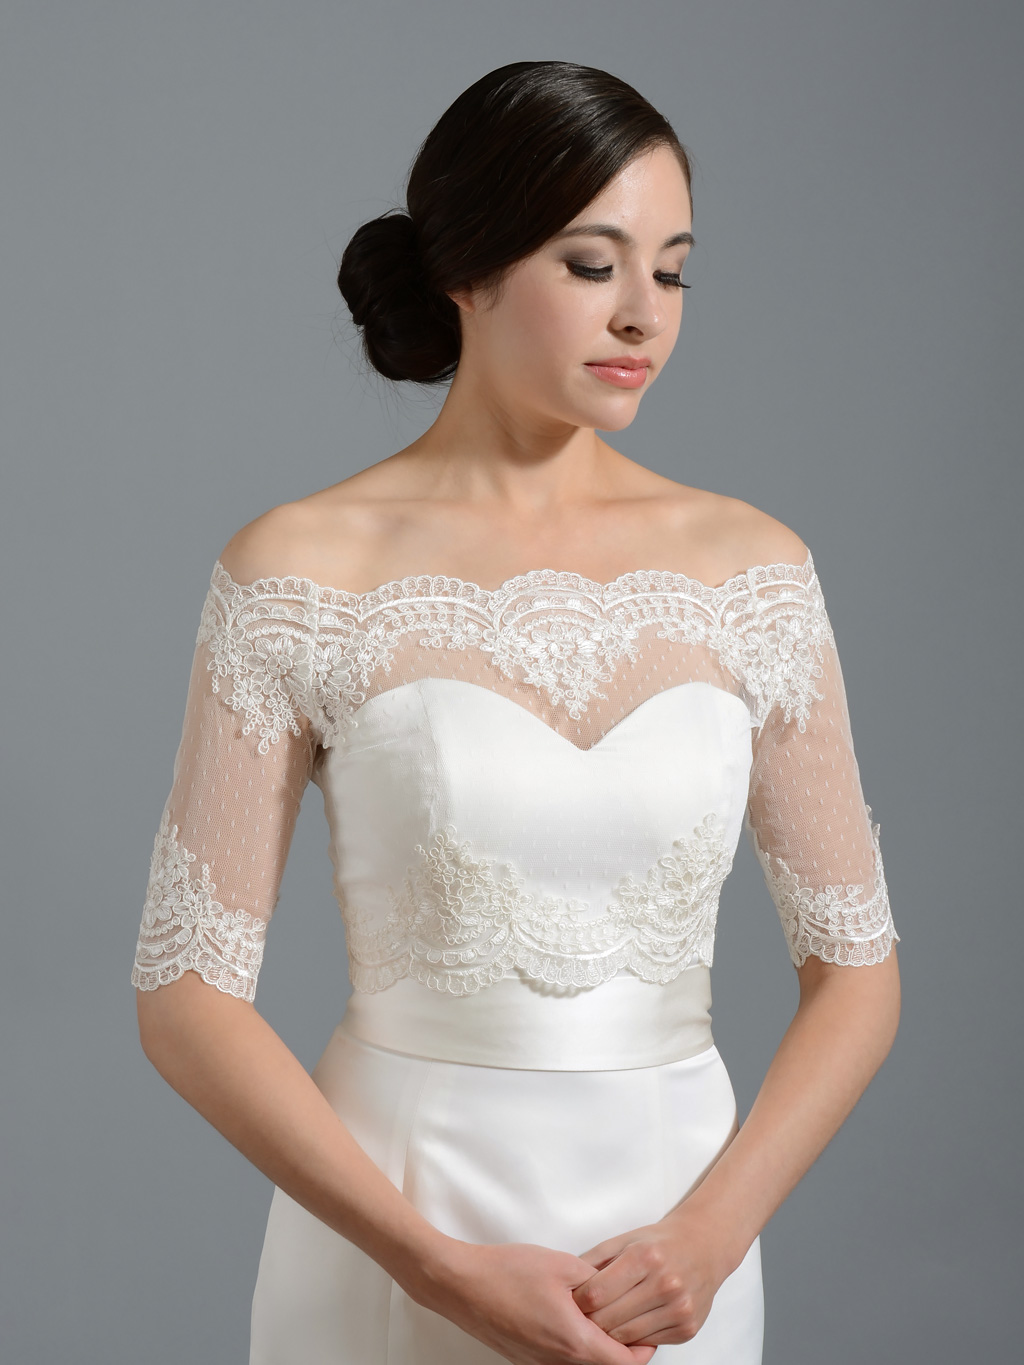 shoulder lace bolero wedding jacket